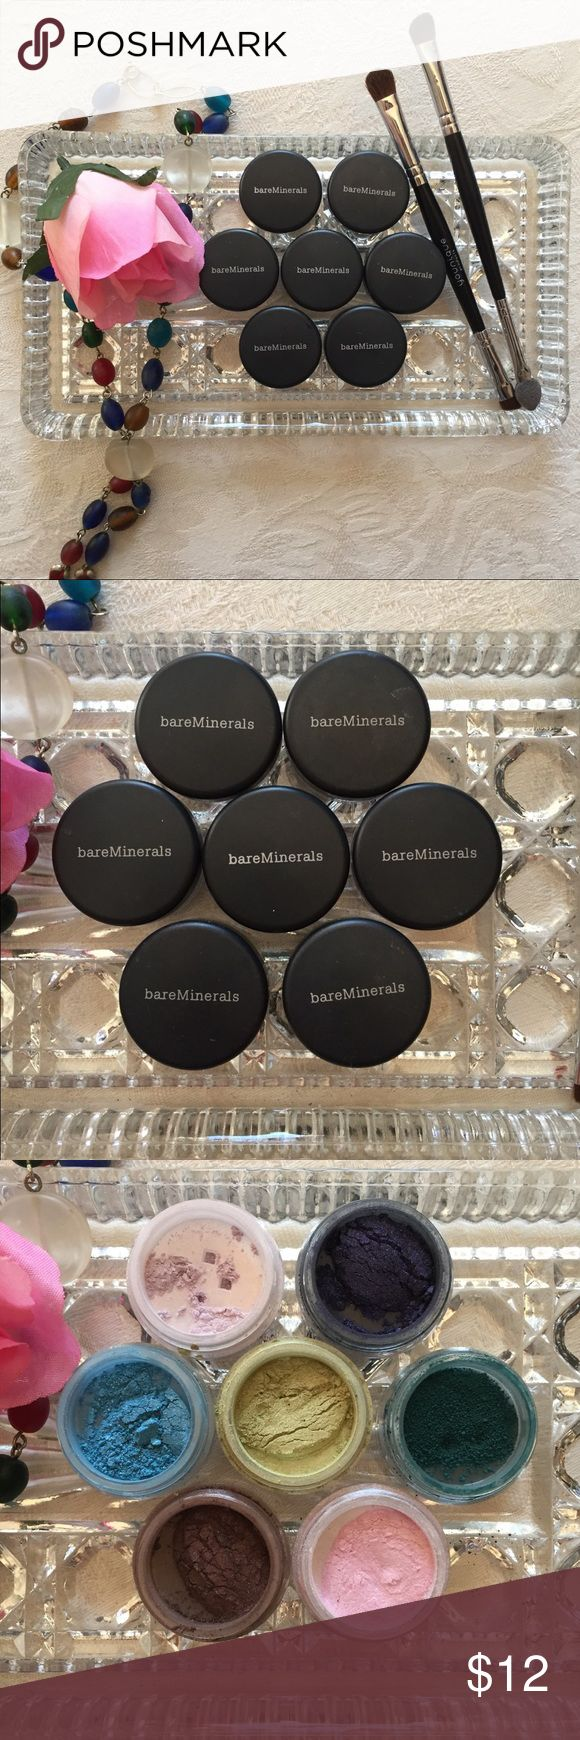 bareMinerals Glimmer Eyeshadow BUNDLE 🌈Creamy, Velvety Smooth, Blendable 🌈Vibrant Colors that Won't Smudge, Run or Change Color 🌈All Natural-Makes Them Easy to Apply and Blend 🌈Can Use for Eye Illuminating Accent 🌈100% Natural 🌈Preservative Free  🌈🌈COLOR LIST🌈🌈 🌈TOP from LEFT-(hugs) Shimmer📌FREE 🌈(Emotion) Shimmer  🌈MIDDLE from LEFT-(no eye-deer) Shimmer  🌈(nice pear) Shimmer 🌈(turquoise sea) Matte/Eyeliner  🌈BOTTOM from LEFT-(charleston) Shimmer 🌈(bikini) Shimmer  📌These…